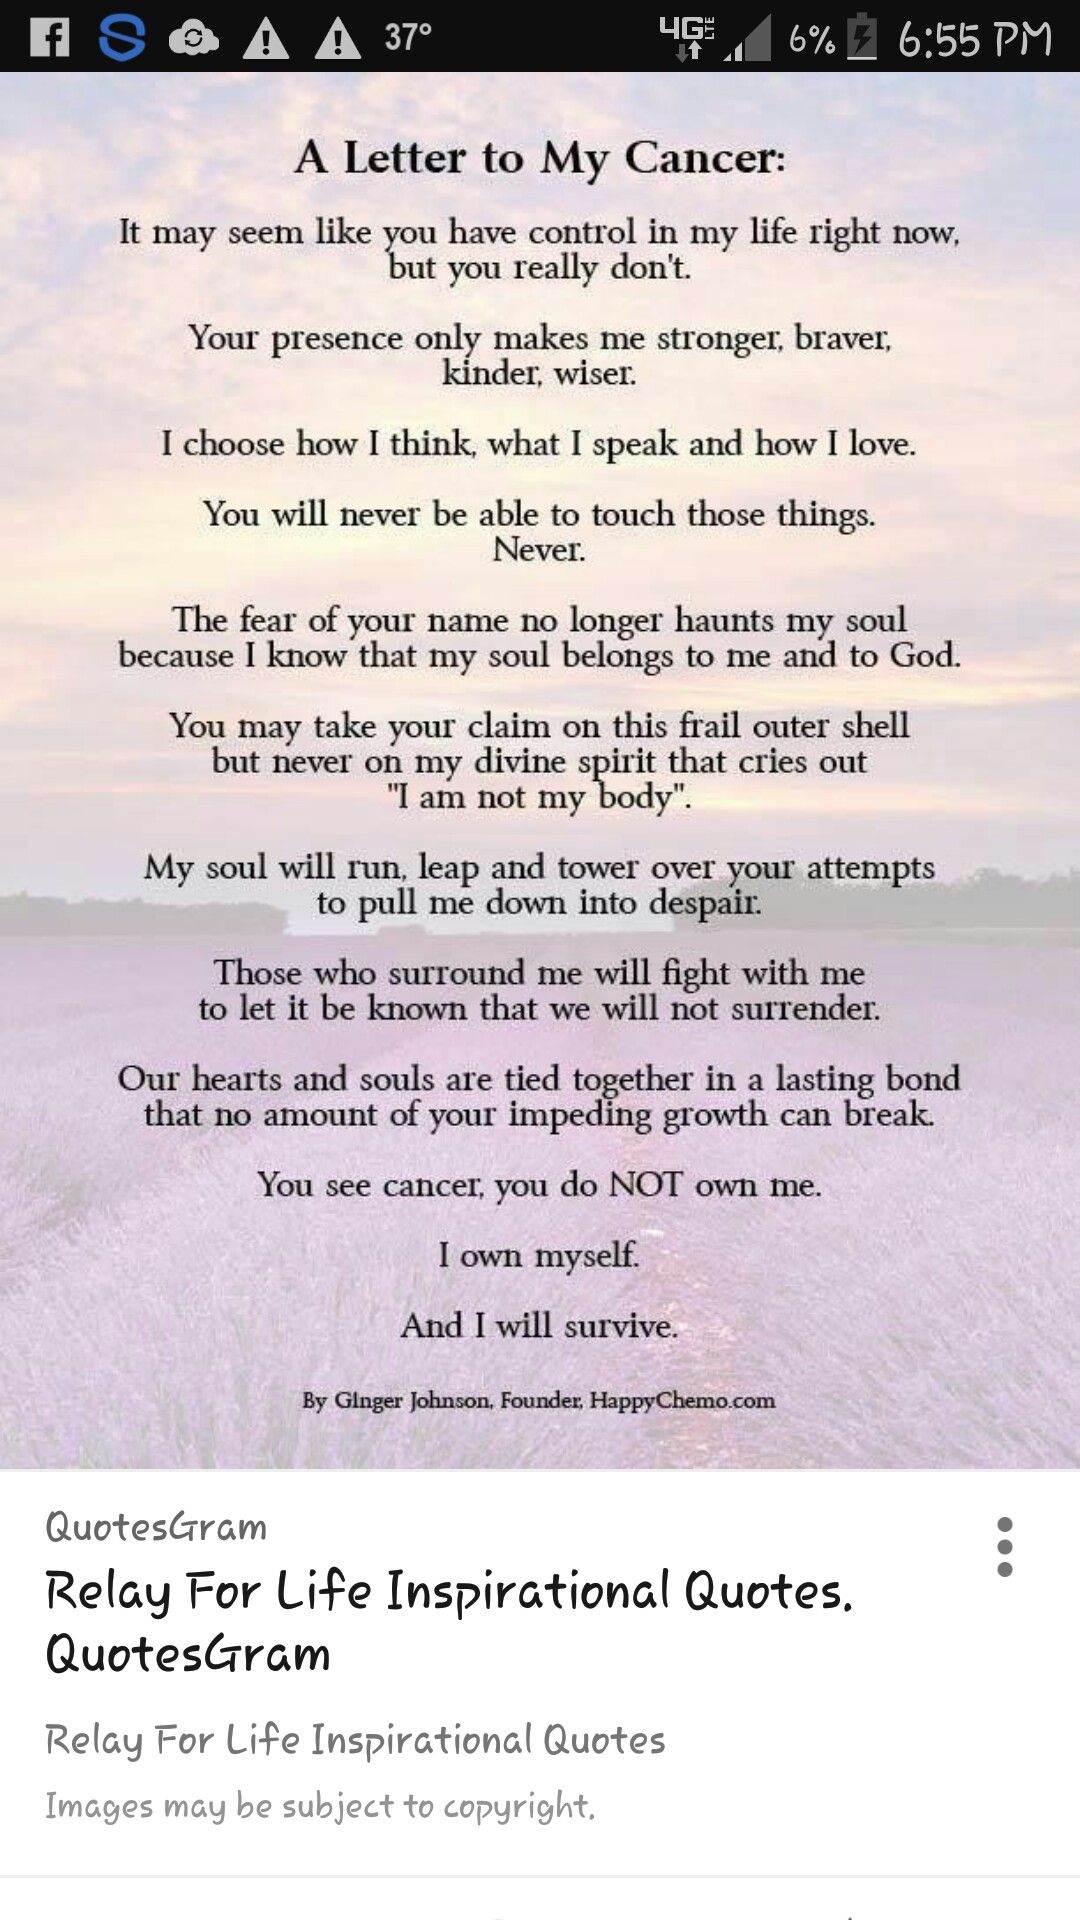 Quotes For Cancer Patients Cancer  Cancer Hope  Pinterest  Inspirational Poems